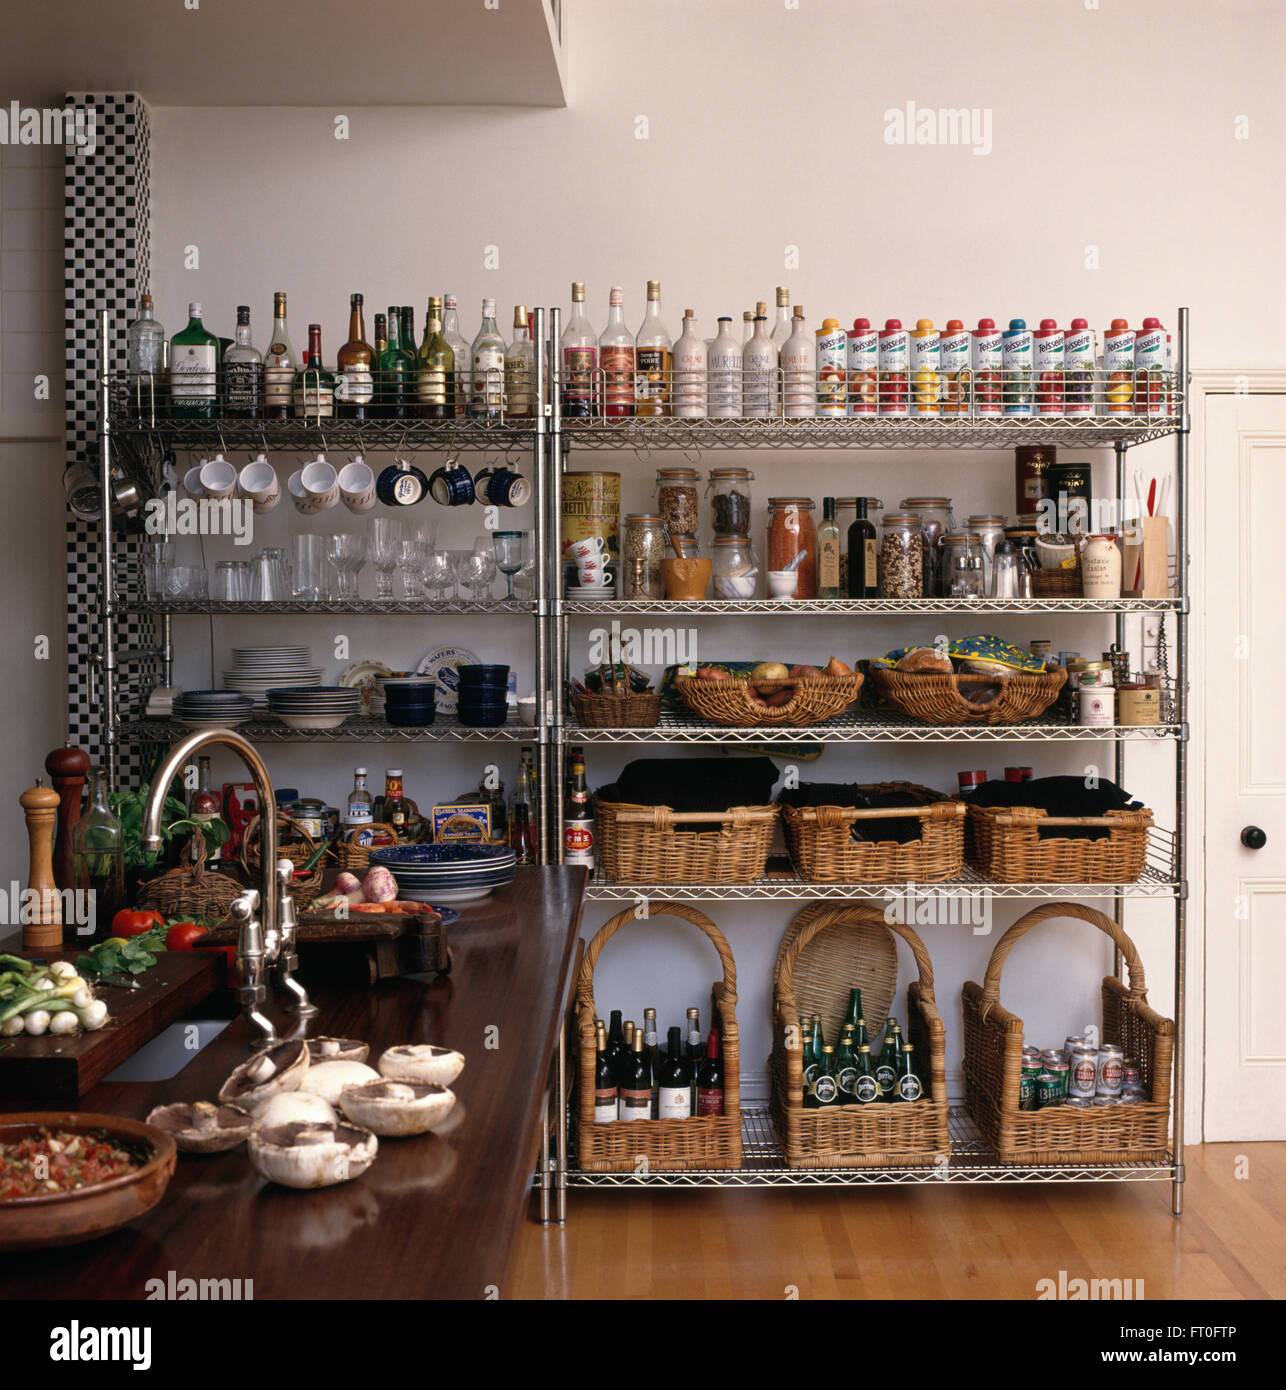 Storage Baskets And Rows Of Bottles On Stainless Steel Storage Shelves In  Modern Kitchen